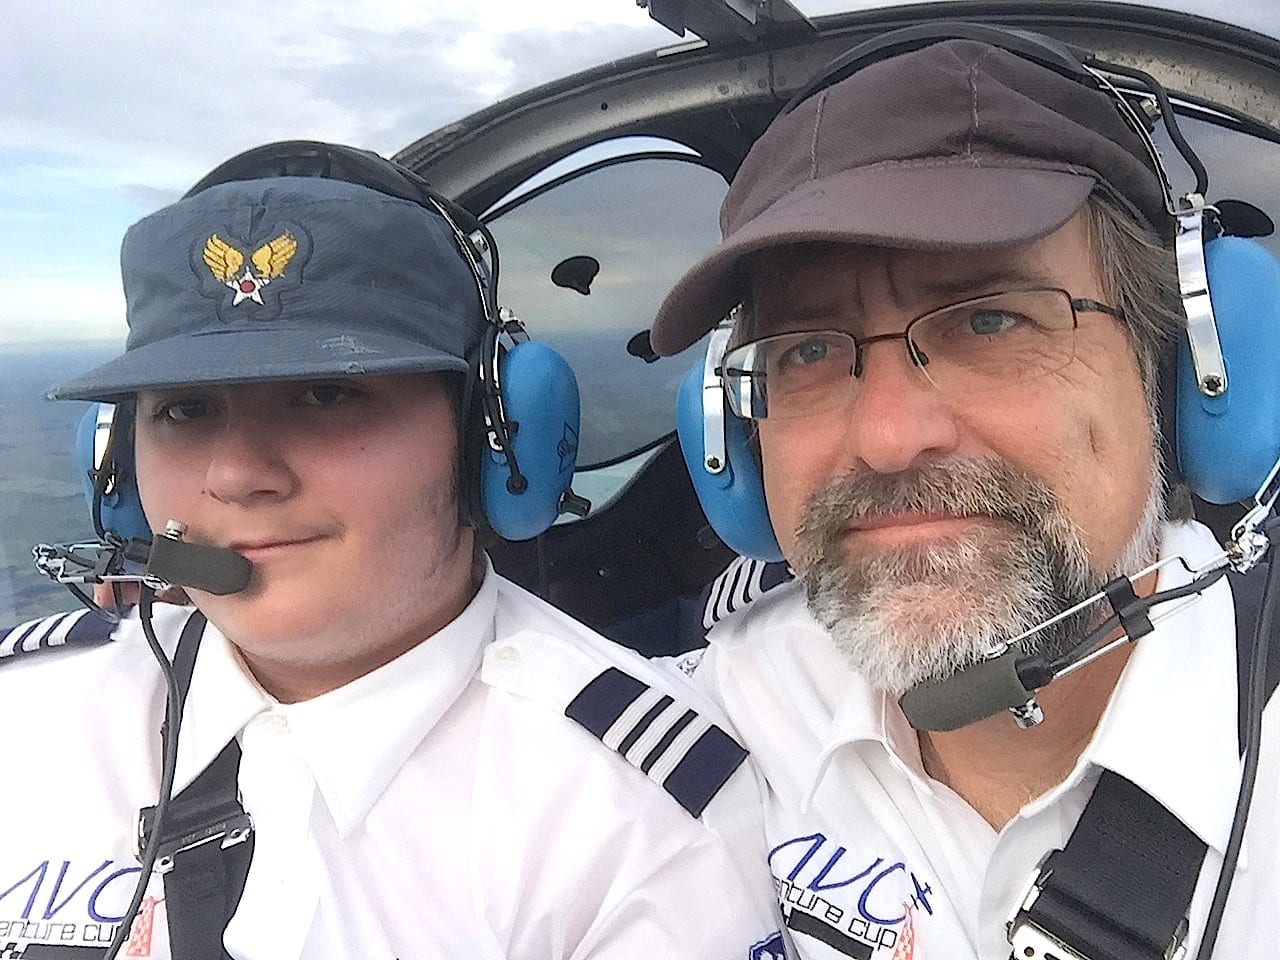 A happy moment early in the flight: Rio A. F. Dubois (left) pilots Race 53 shortly after take off, while pilot-in-command William E. Dubois scans the panel. 14-year-old Rio was the youngest certificated student pilot in this year's race, and one of the youngest in race history. (Photo by William E. Dubois)